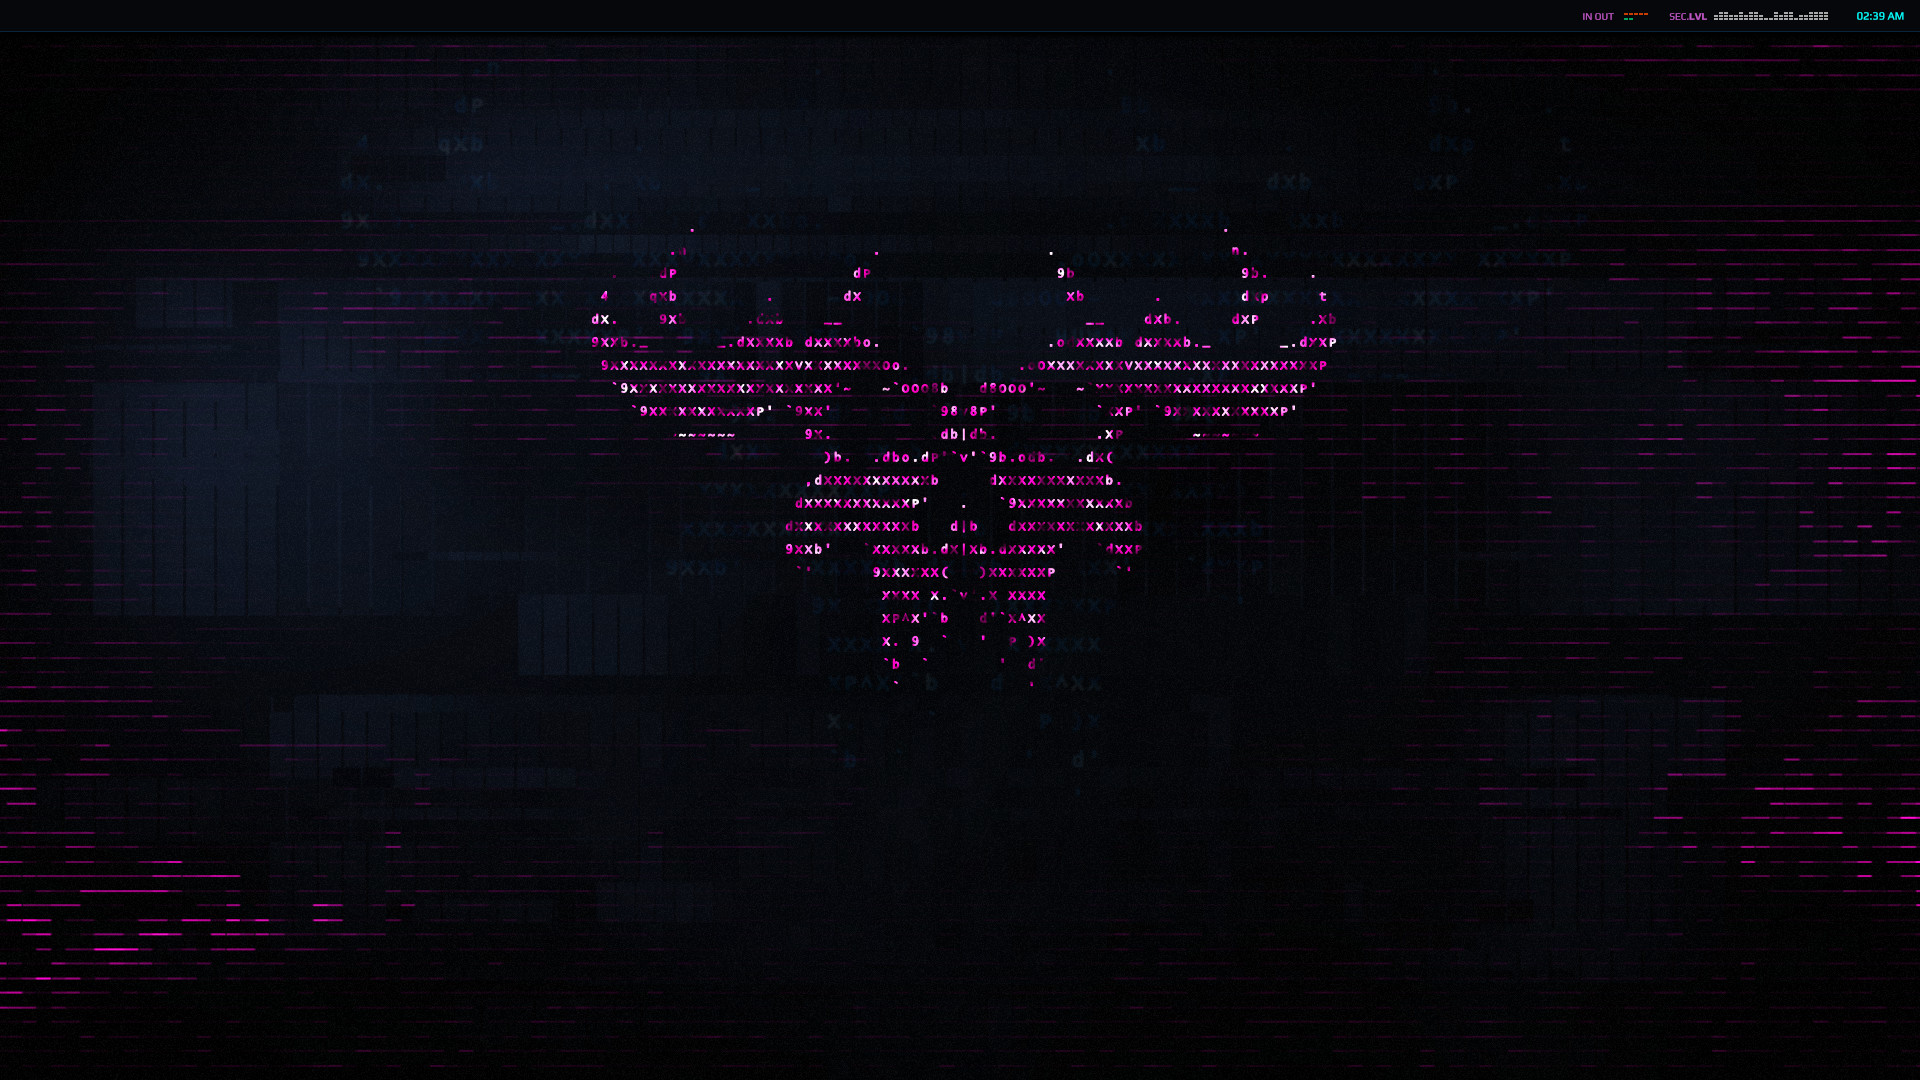 Hacker's Wallpaper